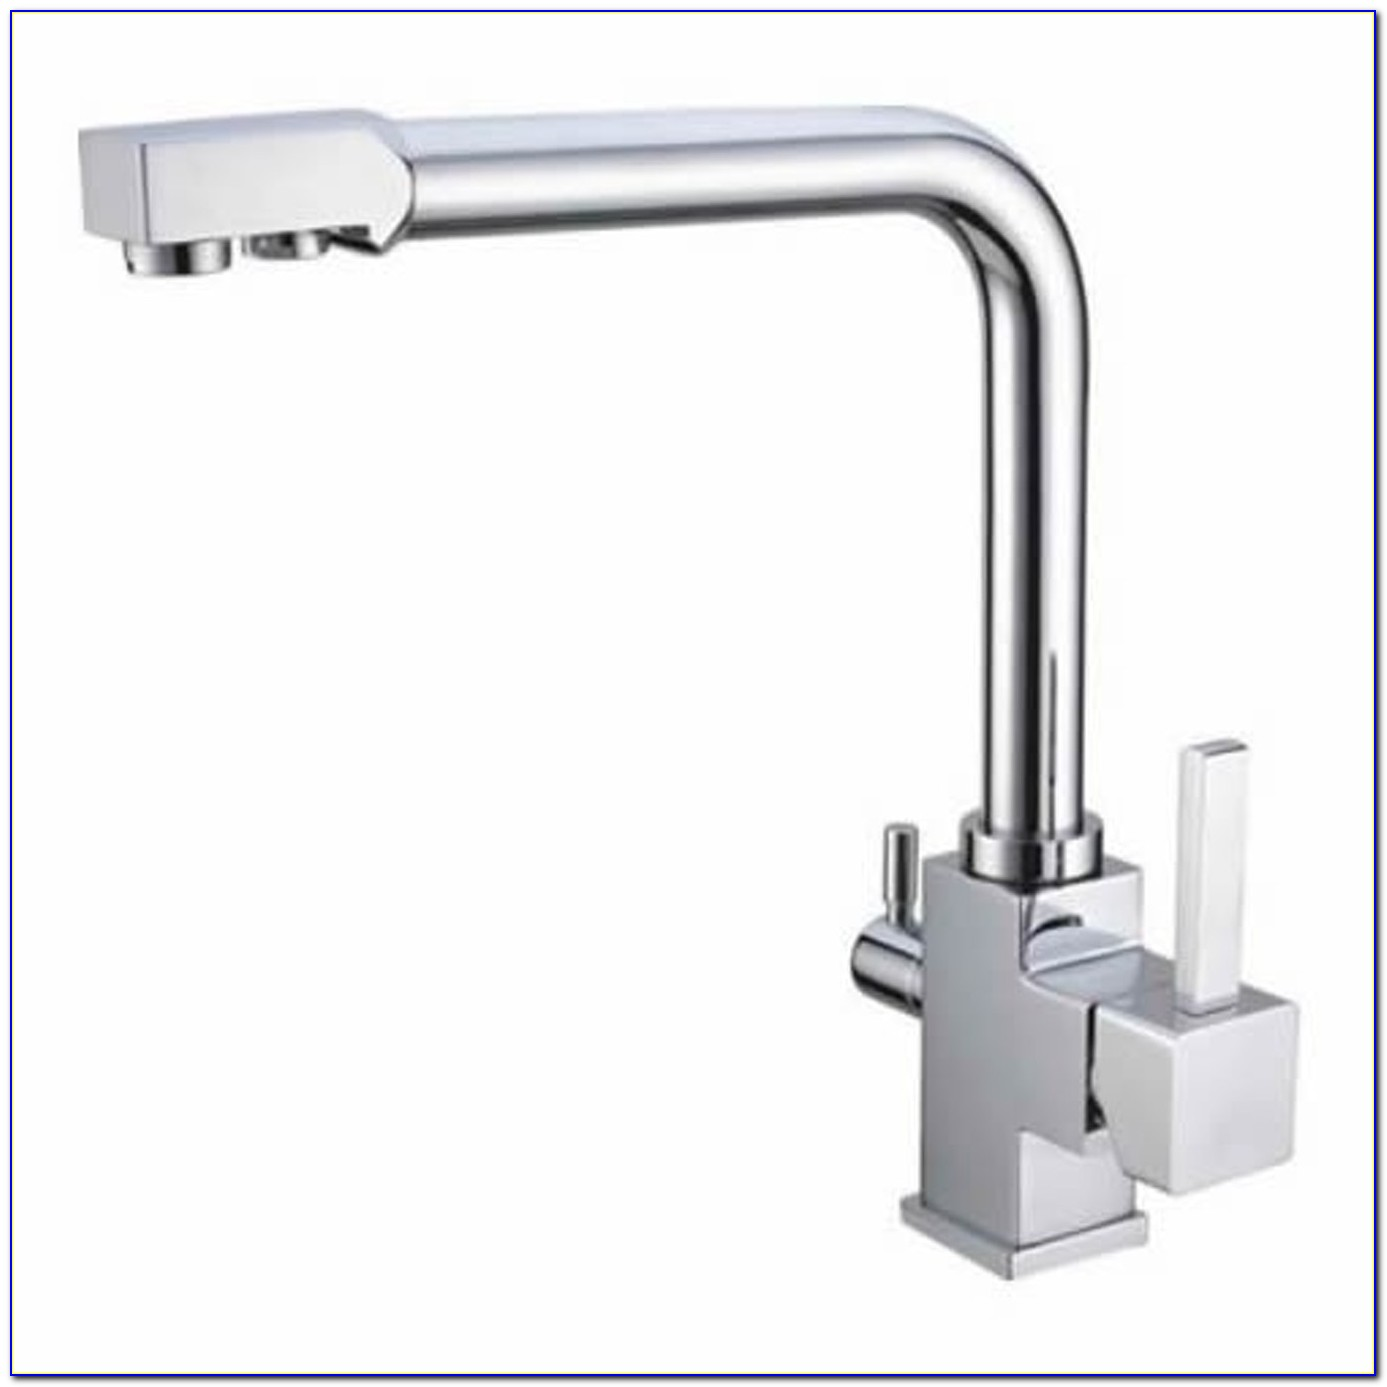 Faucet With Filtered Water Dispenser